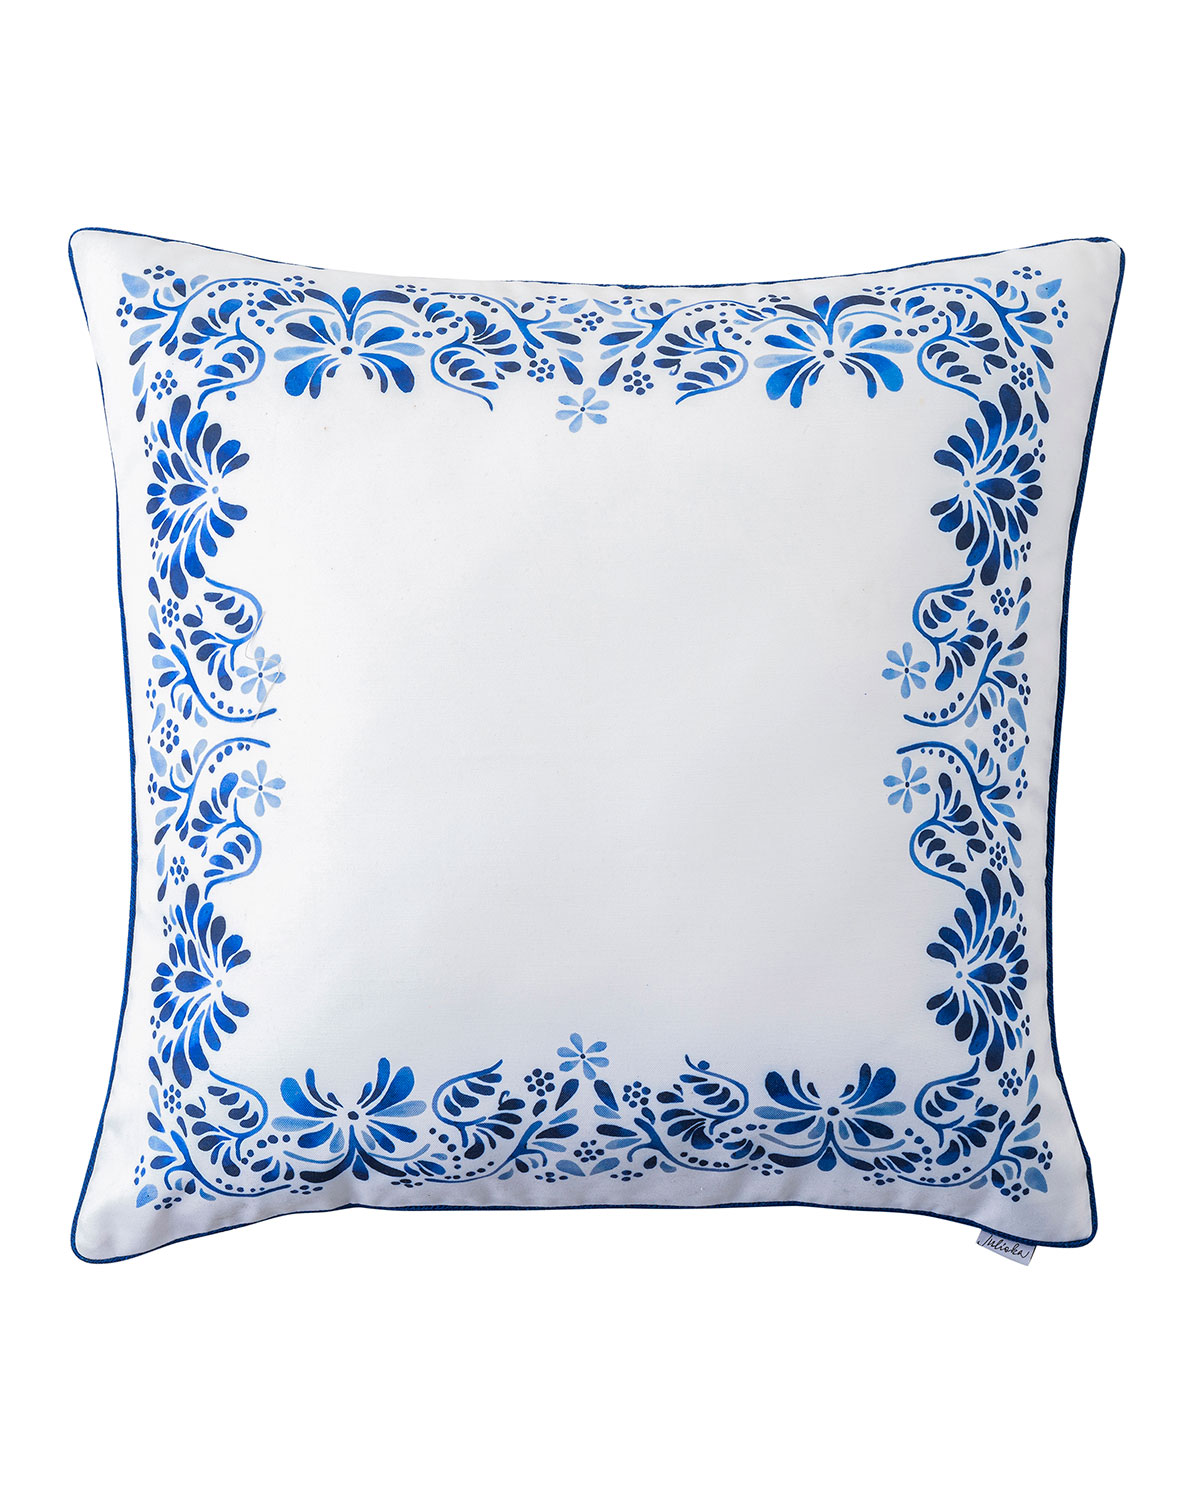 "Juliska IBERIAN JOURNEY INDIGO BORDER PILLOW, 22""SQ"